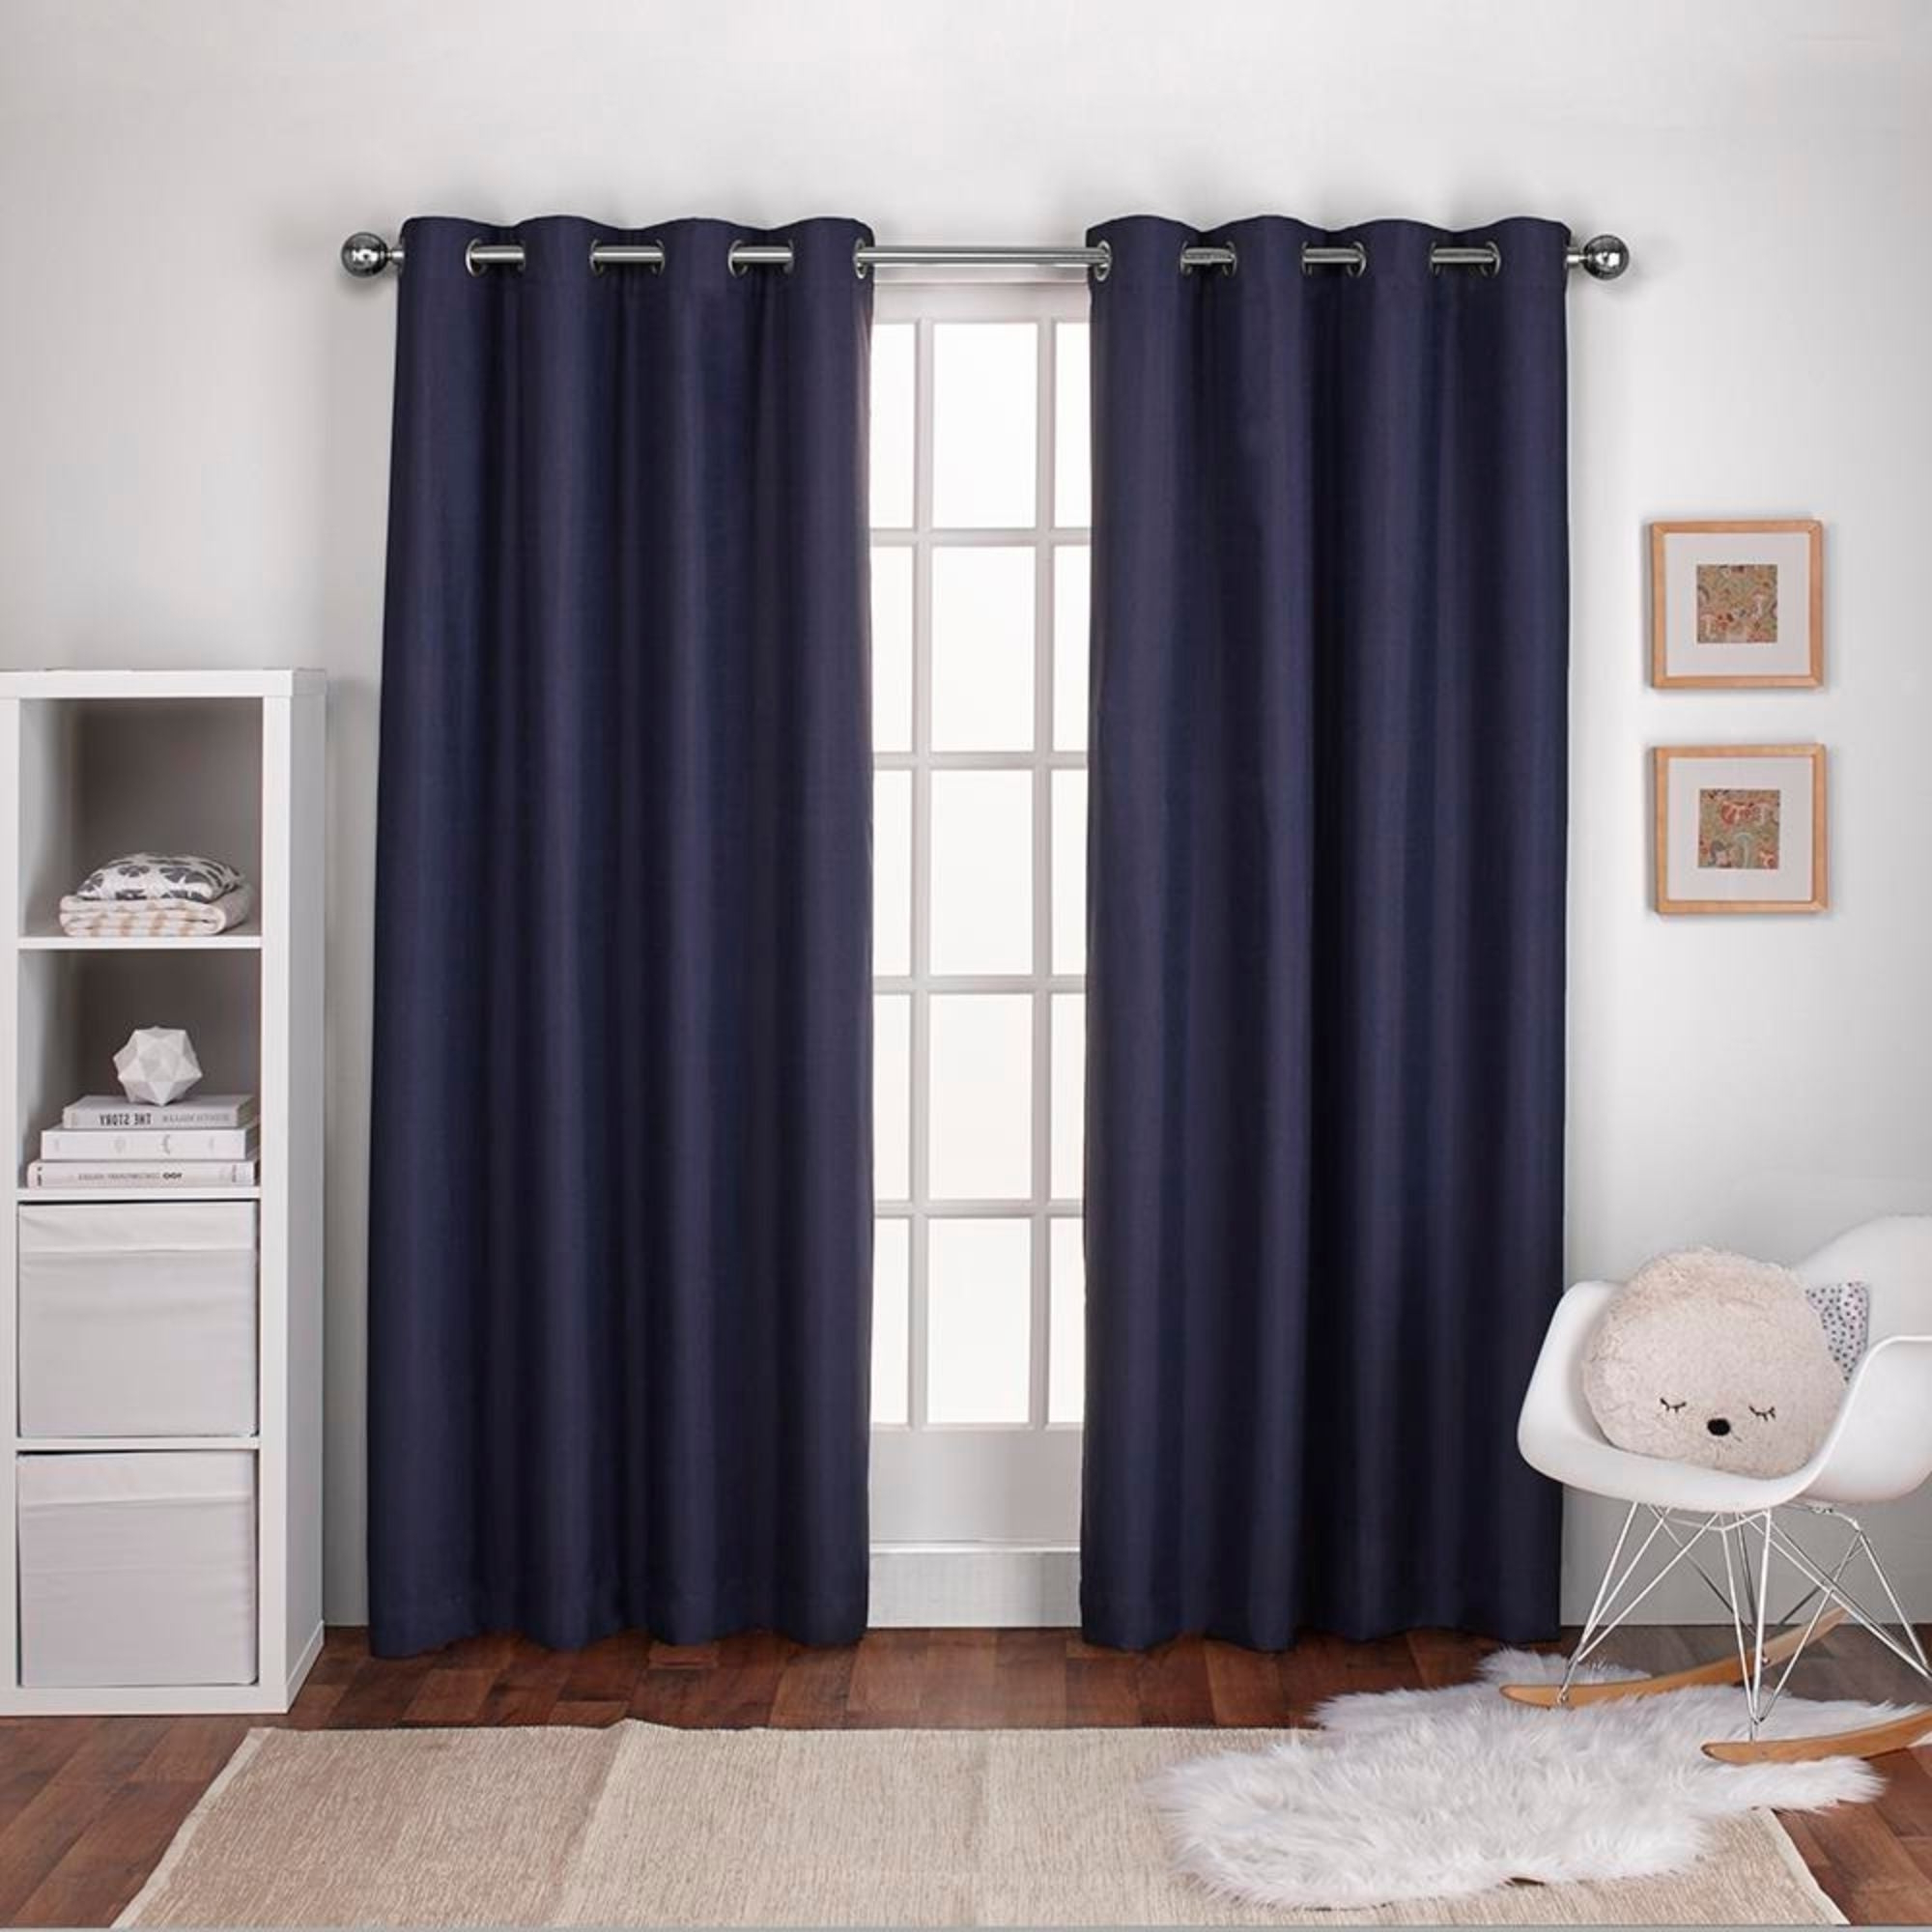 Ati Home Linen Thermal Woven Blackout Grommet Top Curtain Panel Pair In Current Woven Blackout Curtain Panel Pairs With Grommet Top (View 9 of 20)